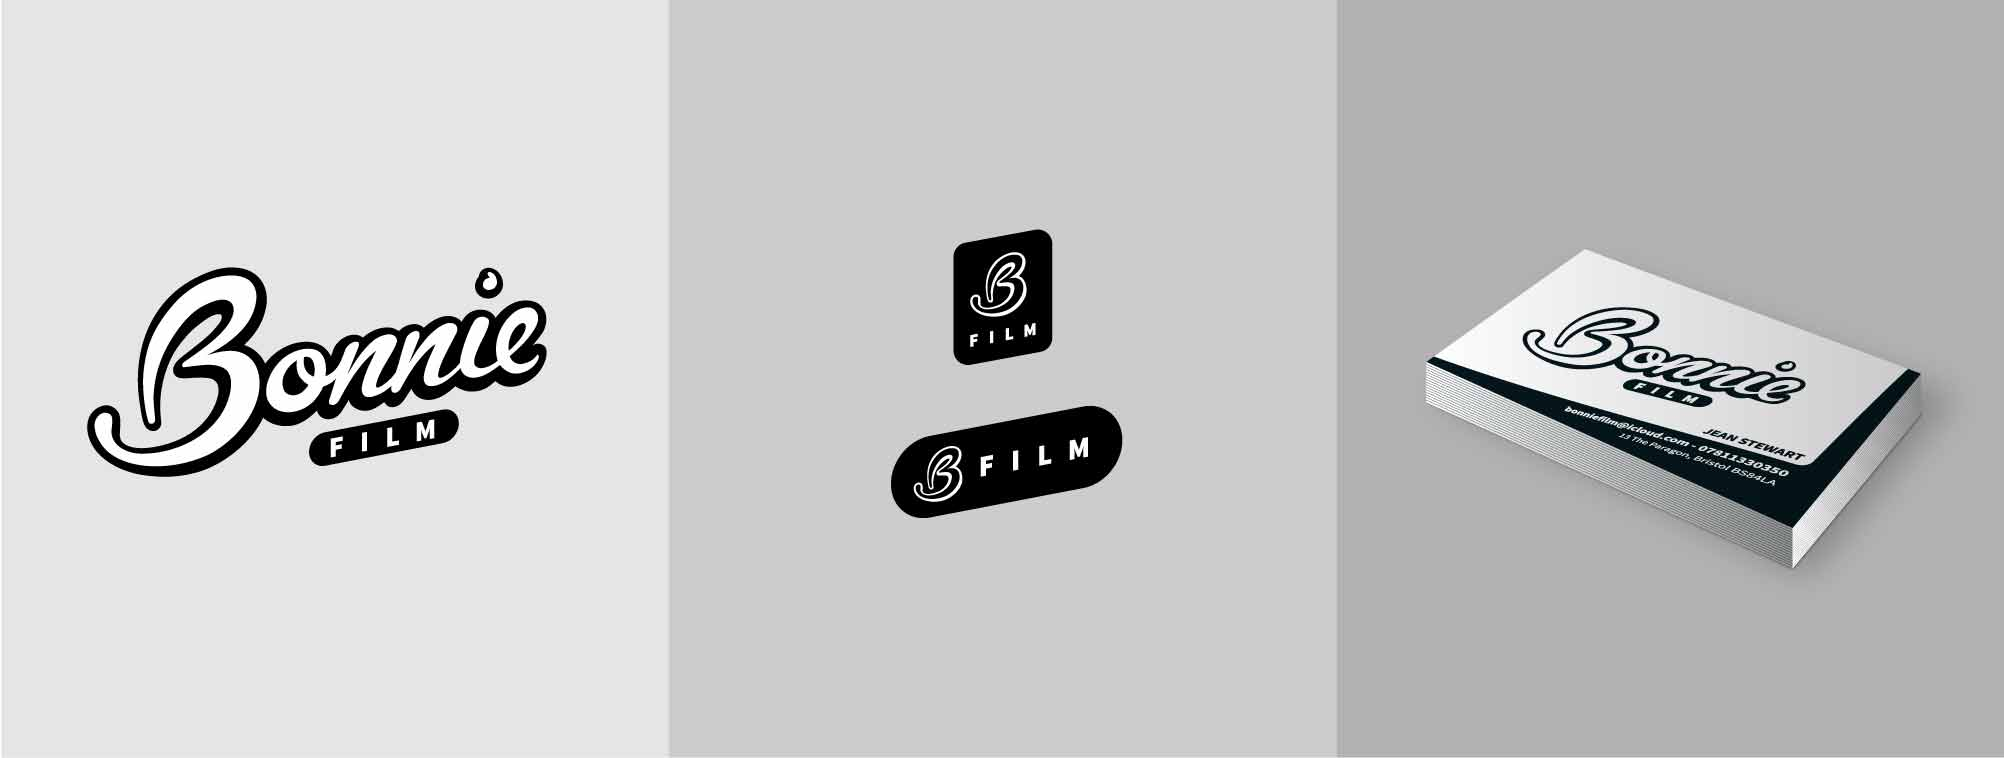 Logo design, icon and business cards